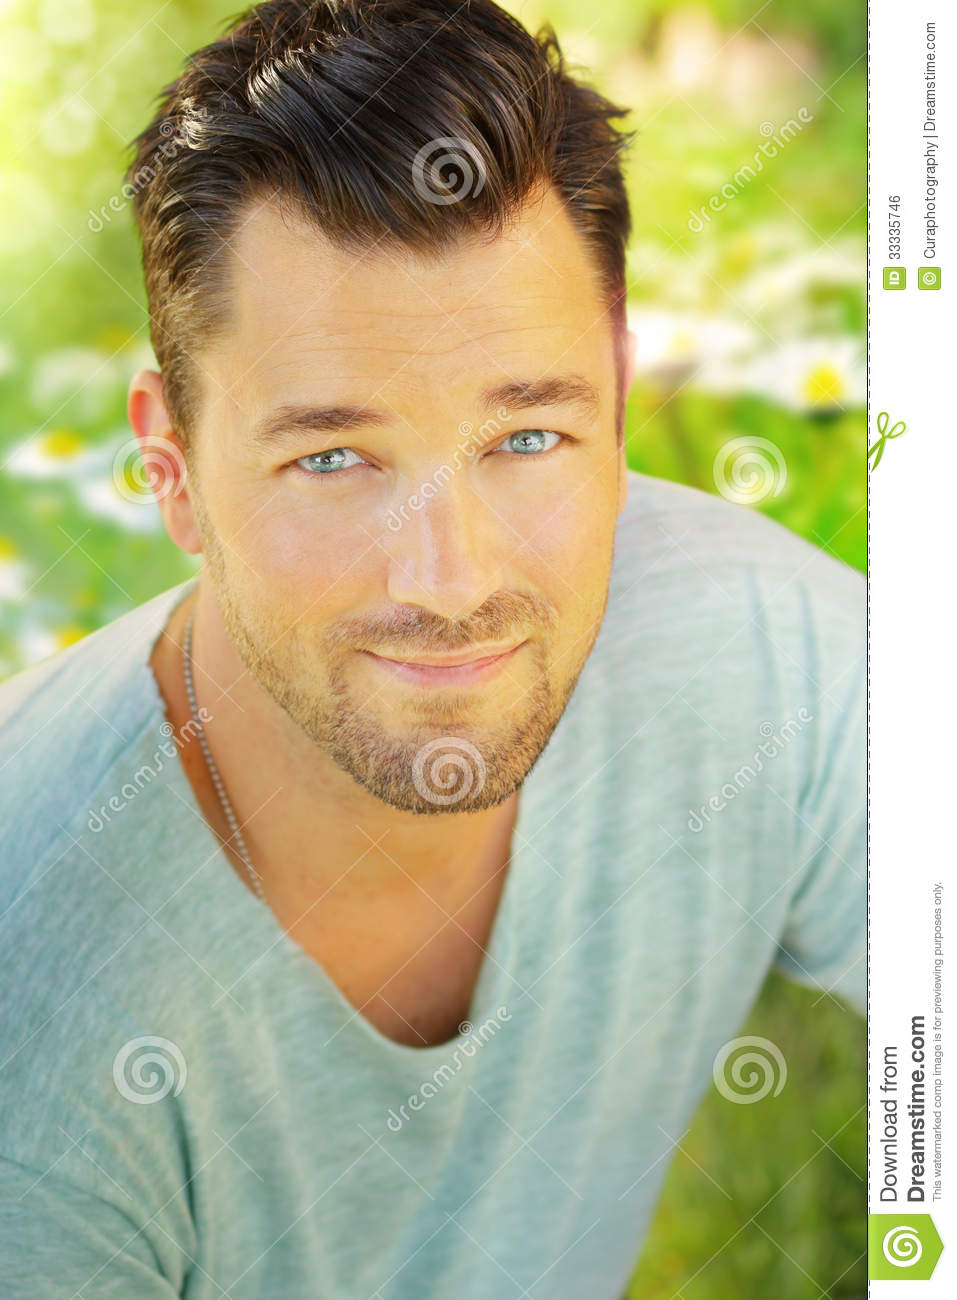 Outdoor portrait of a very handsome young man with nice smiling ...: dreamstime.com/royalty-free-stock-image-young-happy-man-outdoor...